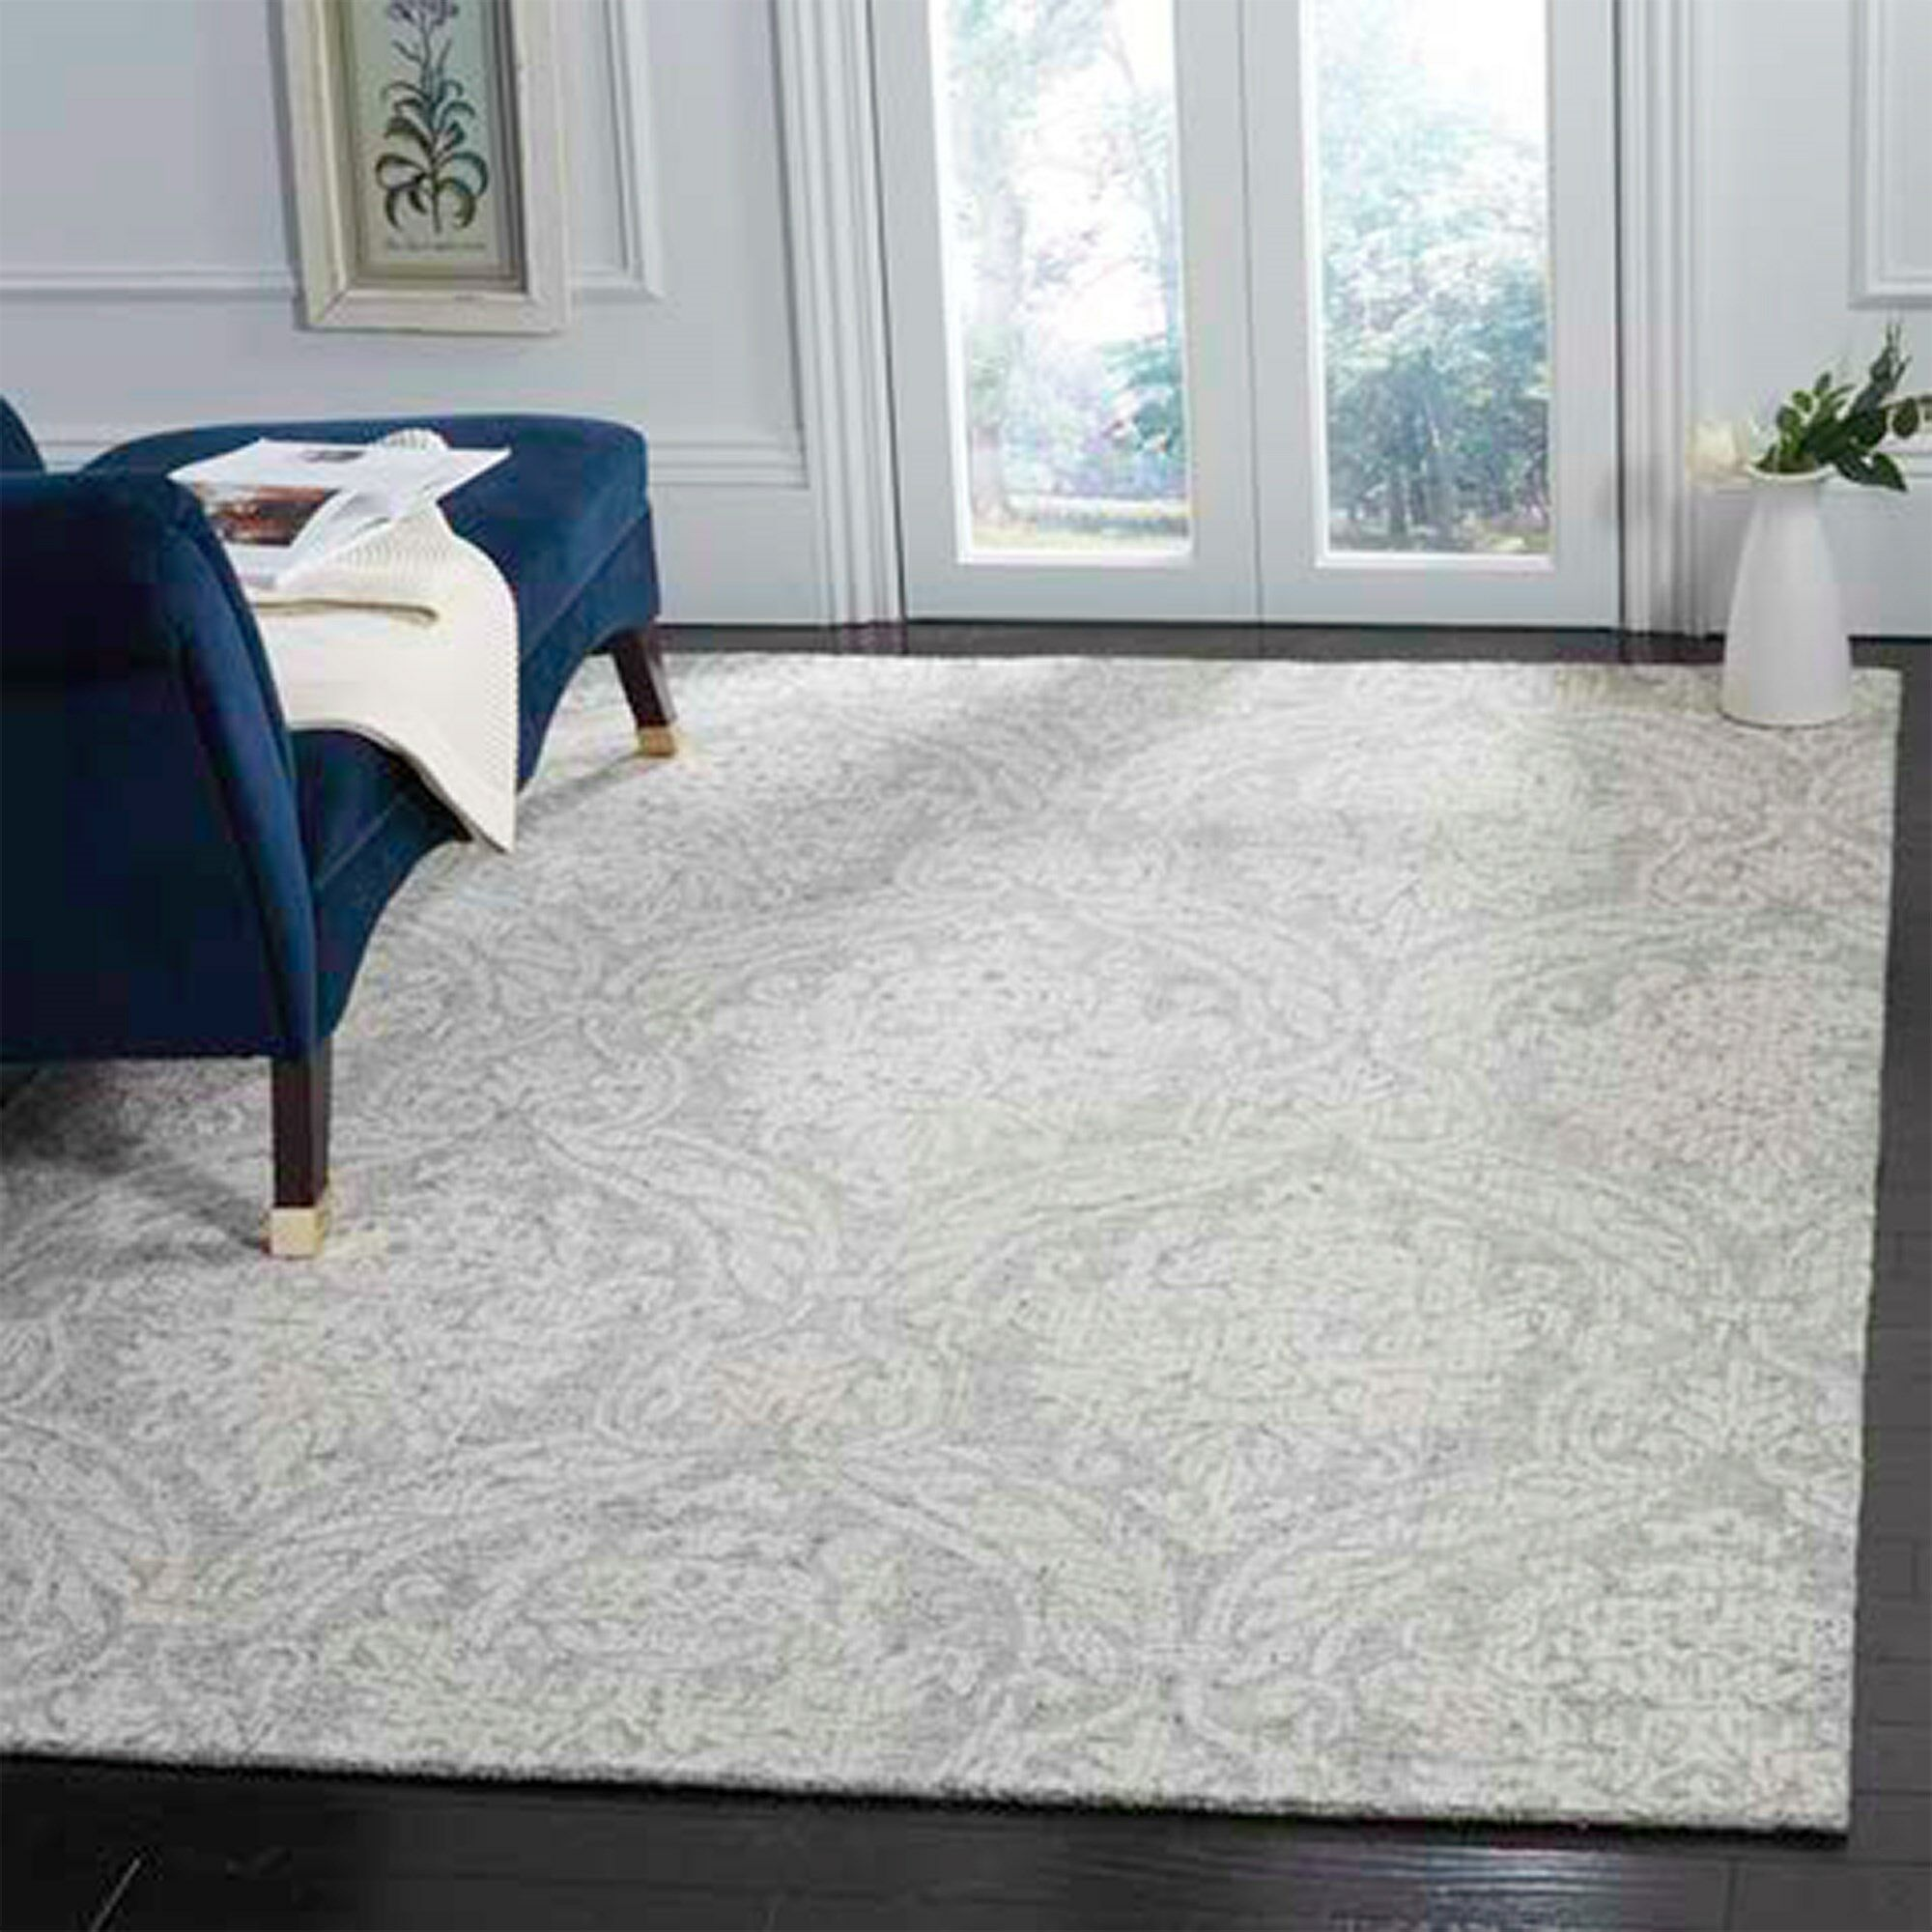 Vogler Abstract Hand-Tufted Wool Gray/Ivory Area Rug Rug Size: Square 6' x 6'